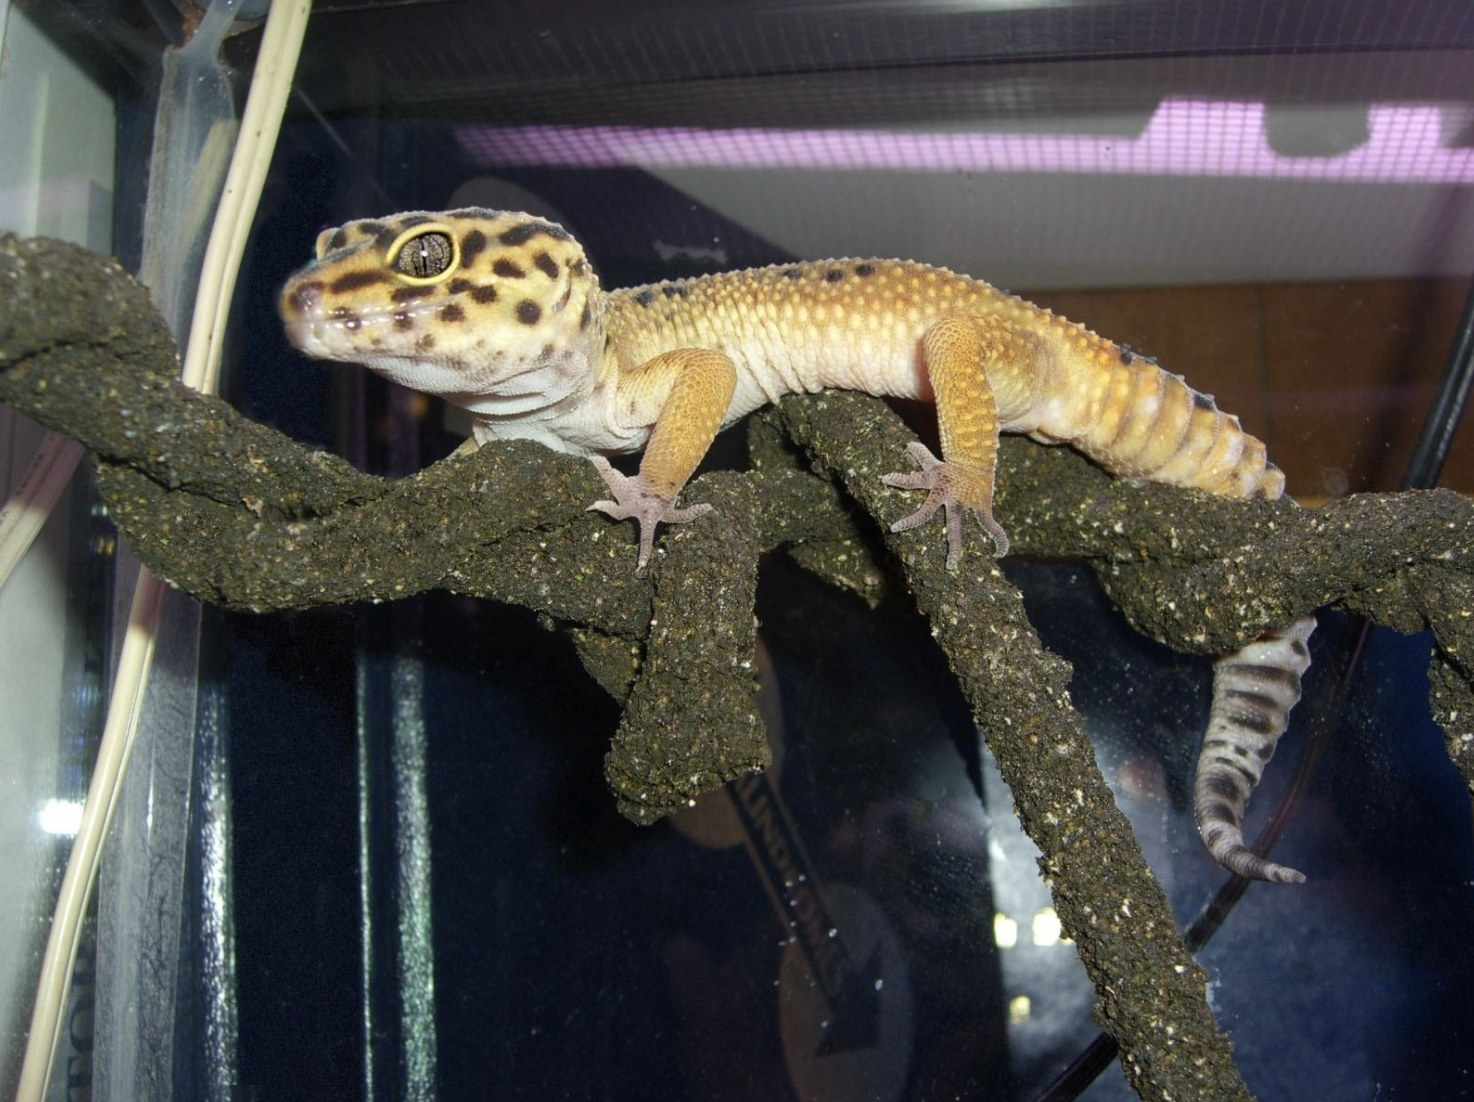 An image of a gecko in its enclosure sitting on top of a vine